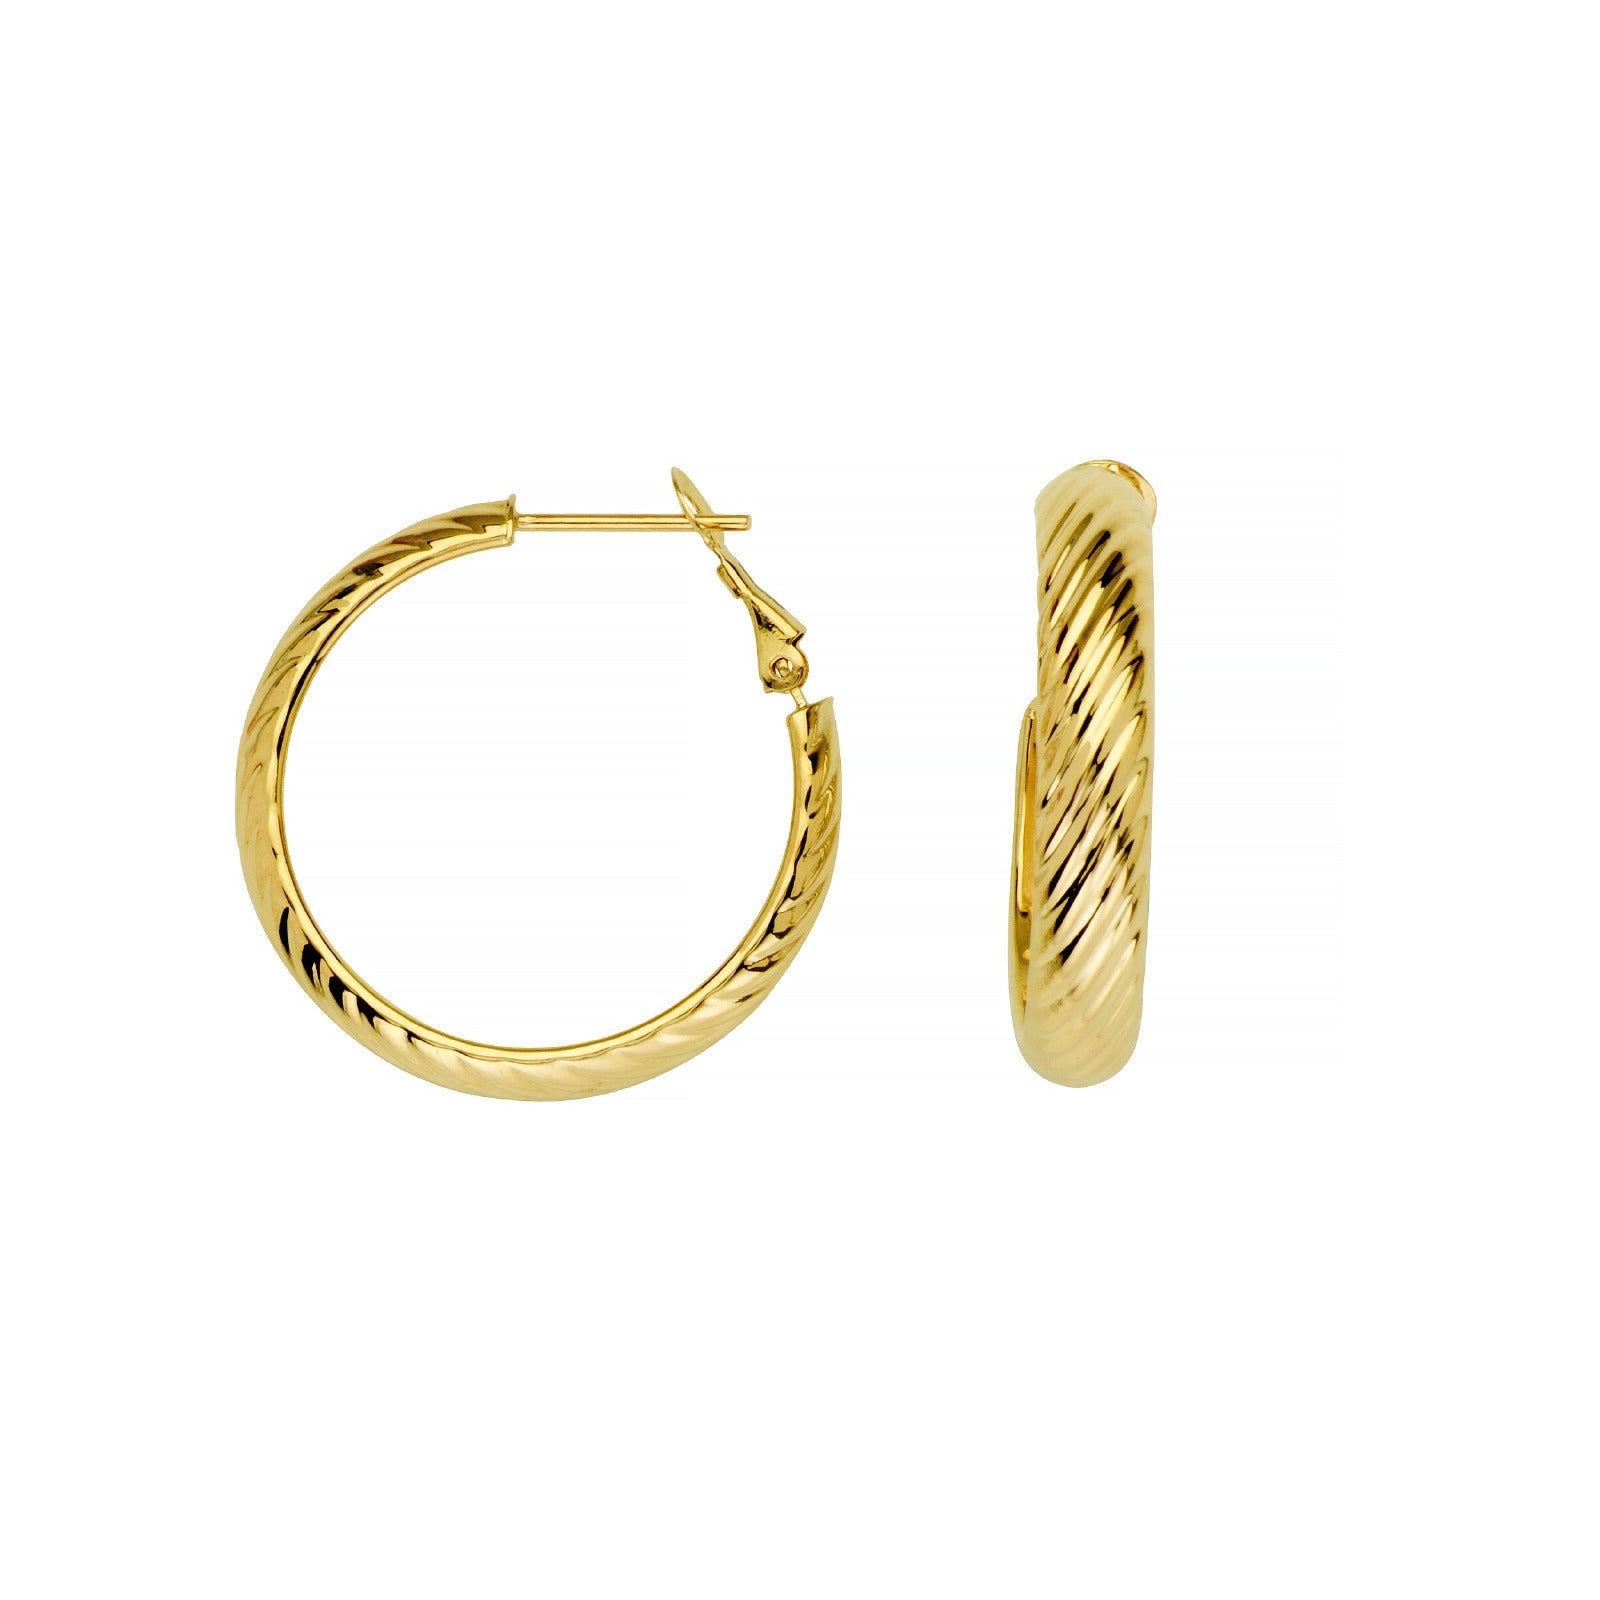 Shiny Ribbed Hoop Earrings, .75 Inch, 14K Yellow Gold